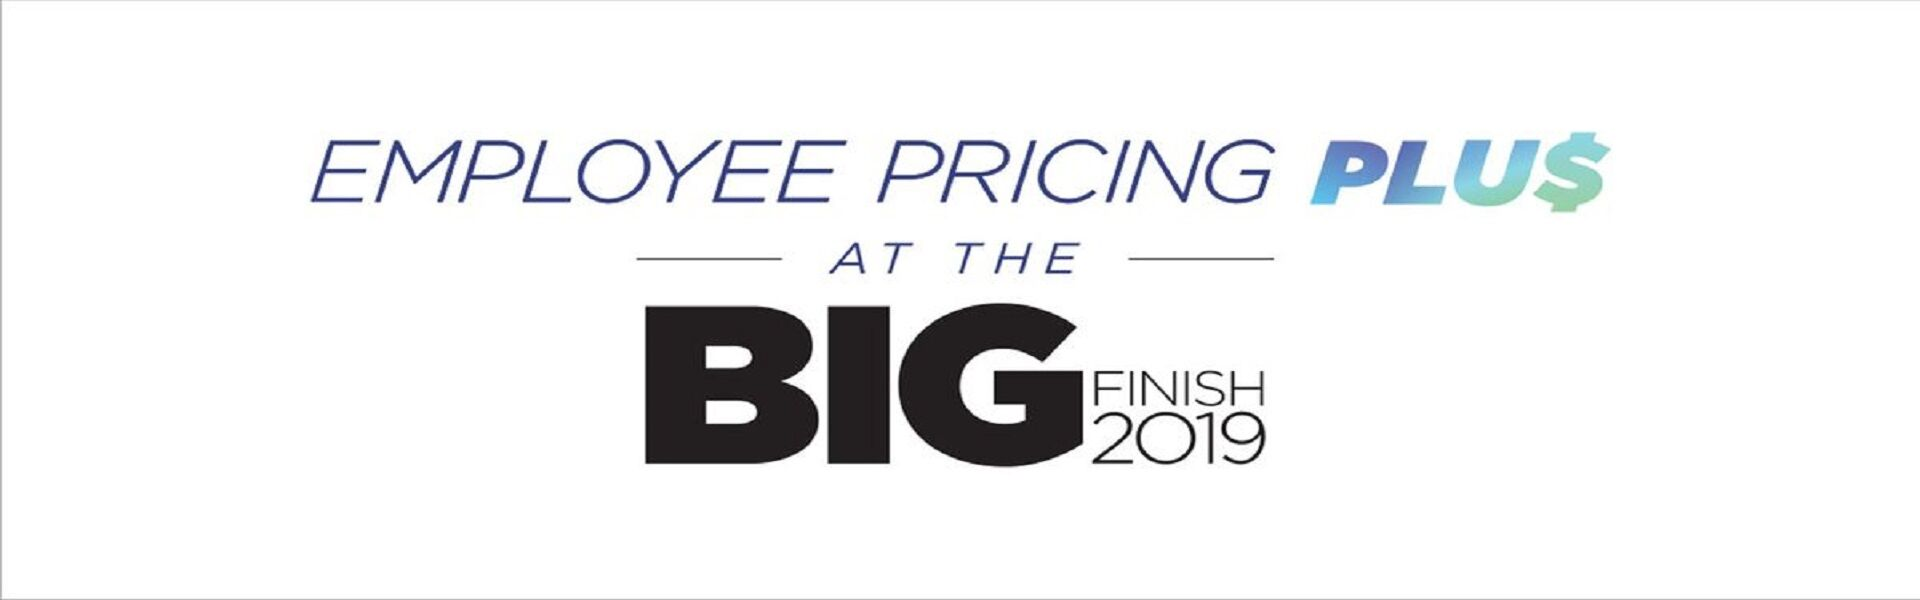 Employee Pricing Plus = Huge Savings at Auffenberg Chrysler of Herrin